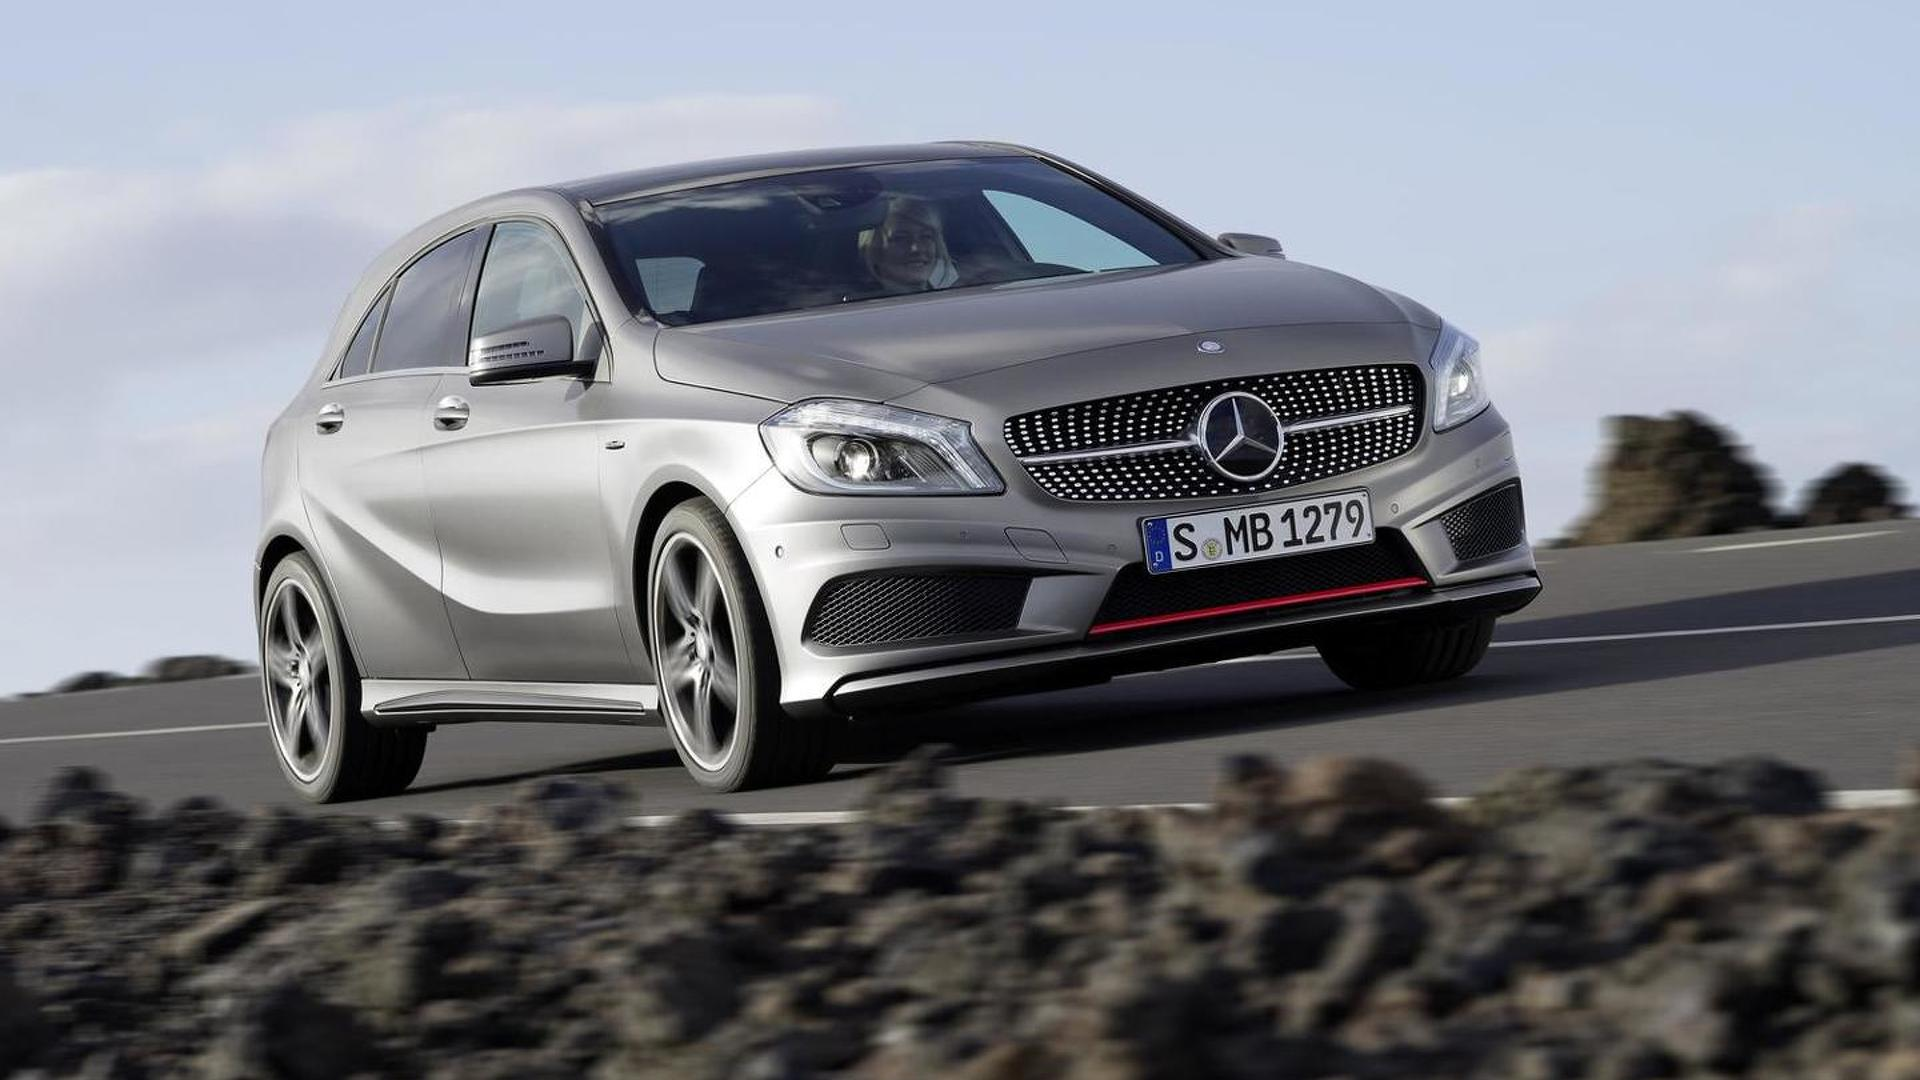 Investors wary over Mercedes downmarket push - report